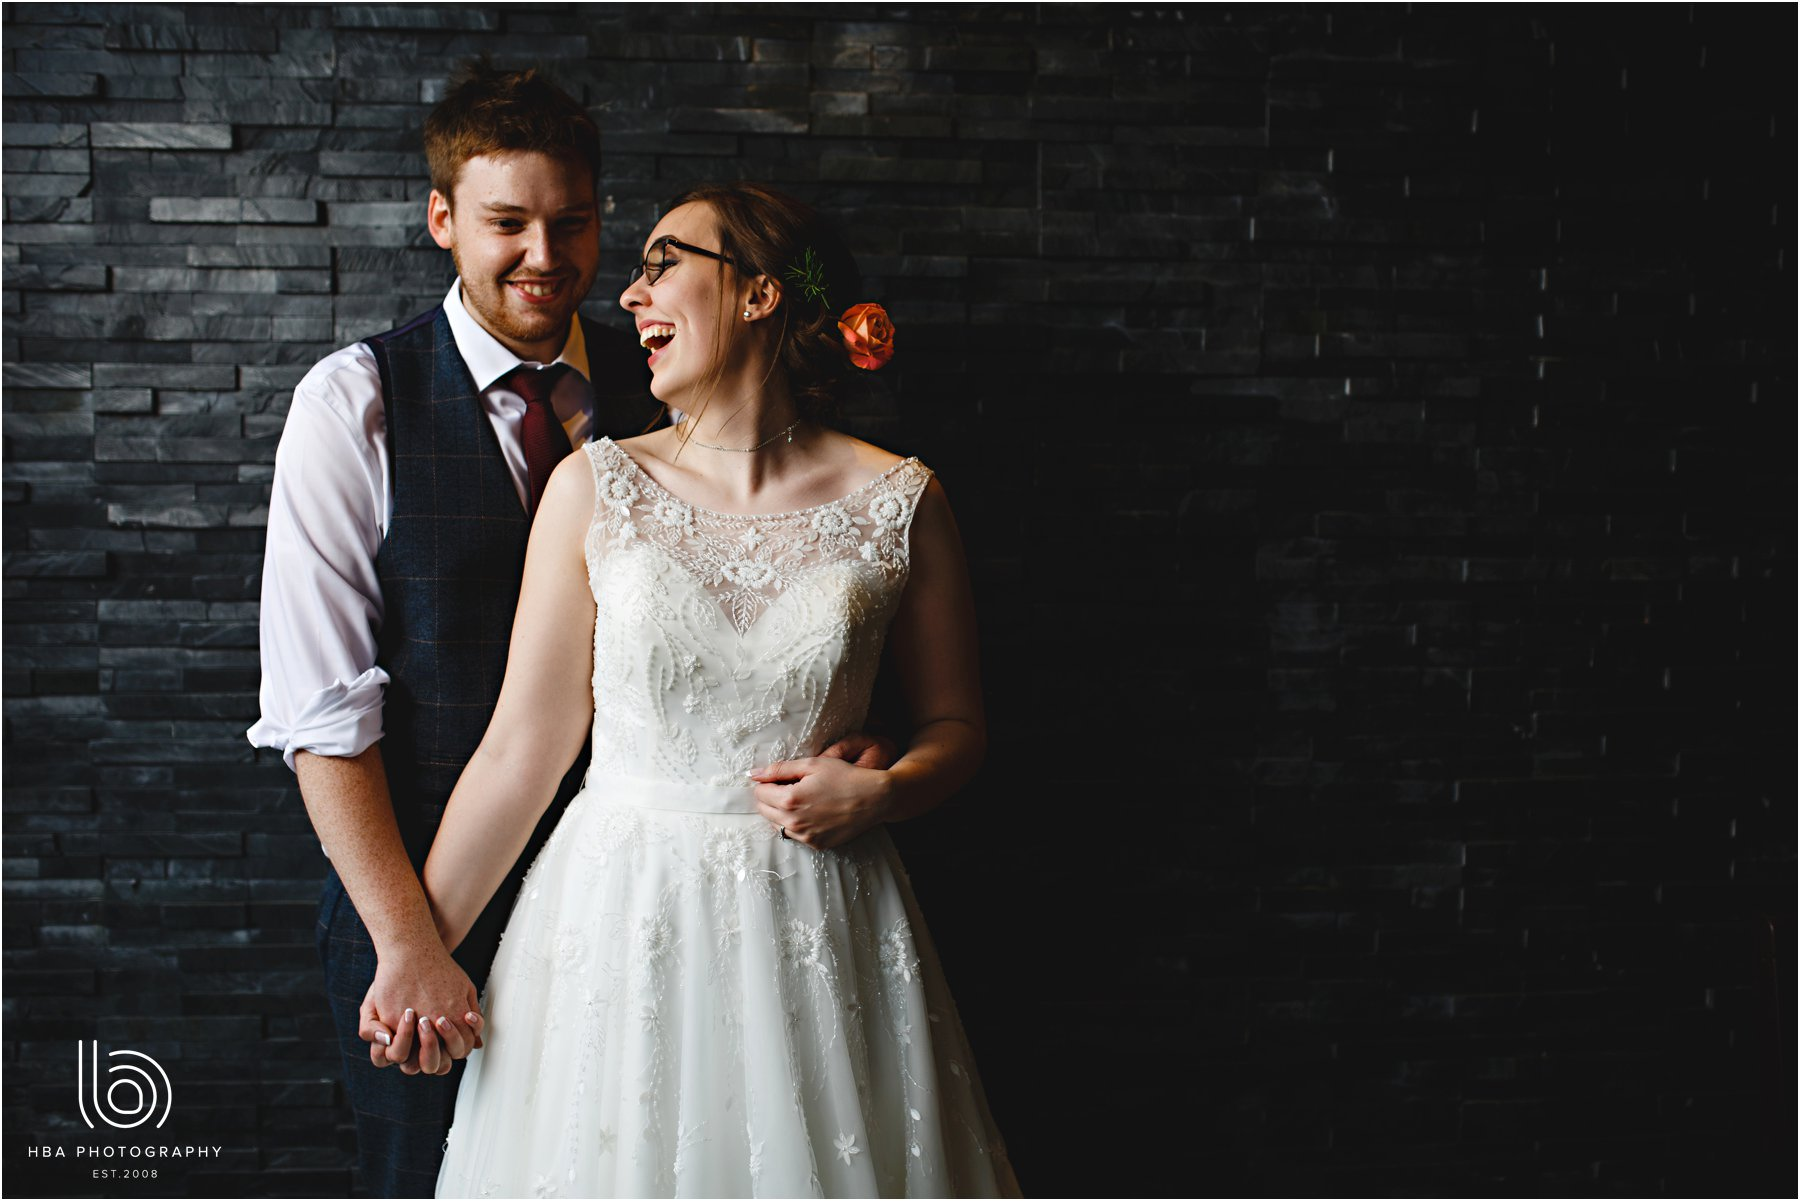 the bride & groom by a slate wall